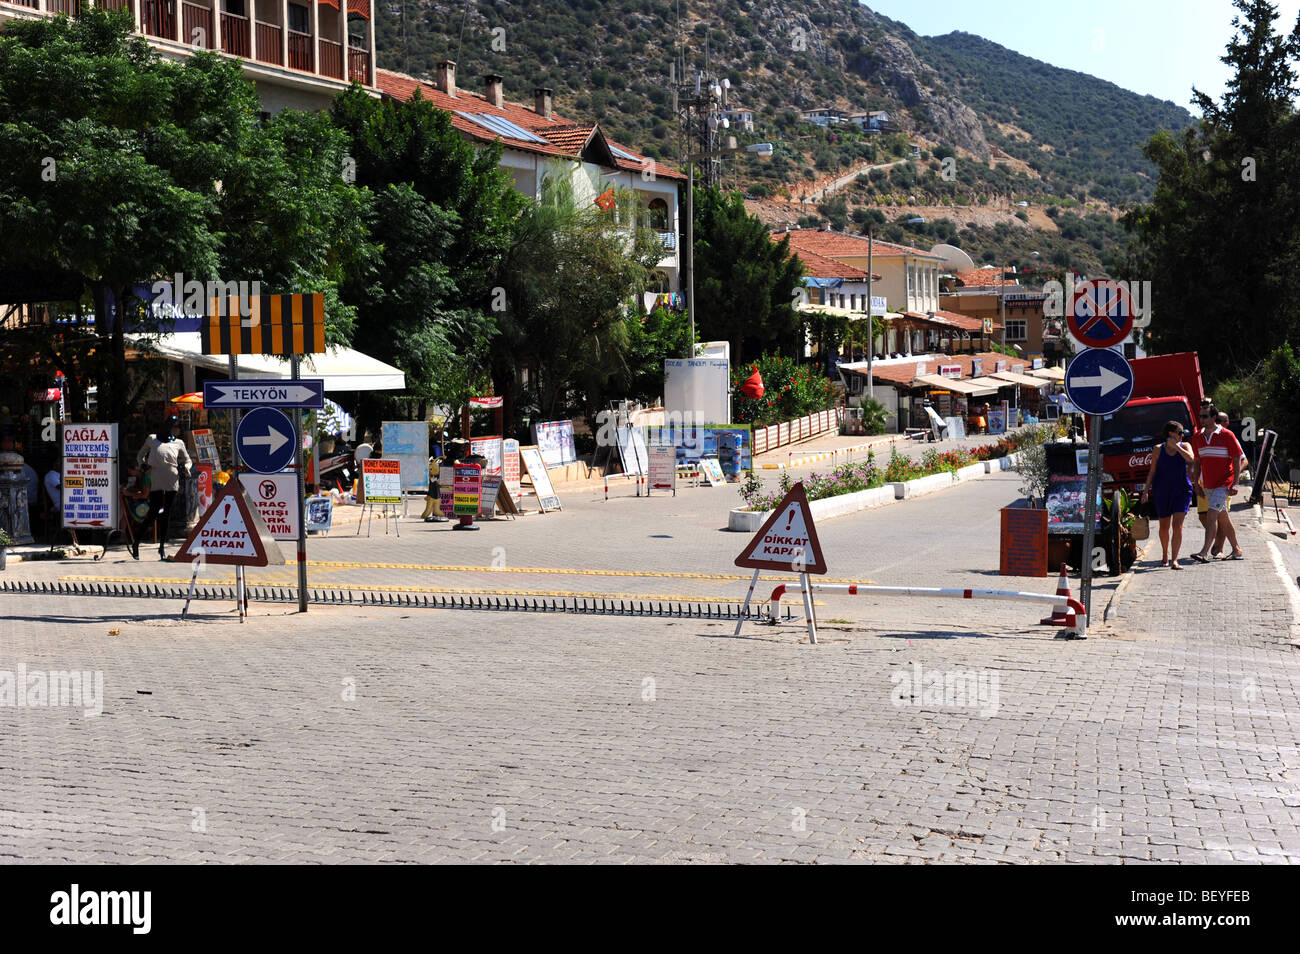 One of  the main roads going through Kalkan with a stinger to stop cars entering - Stock Image